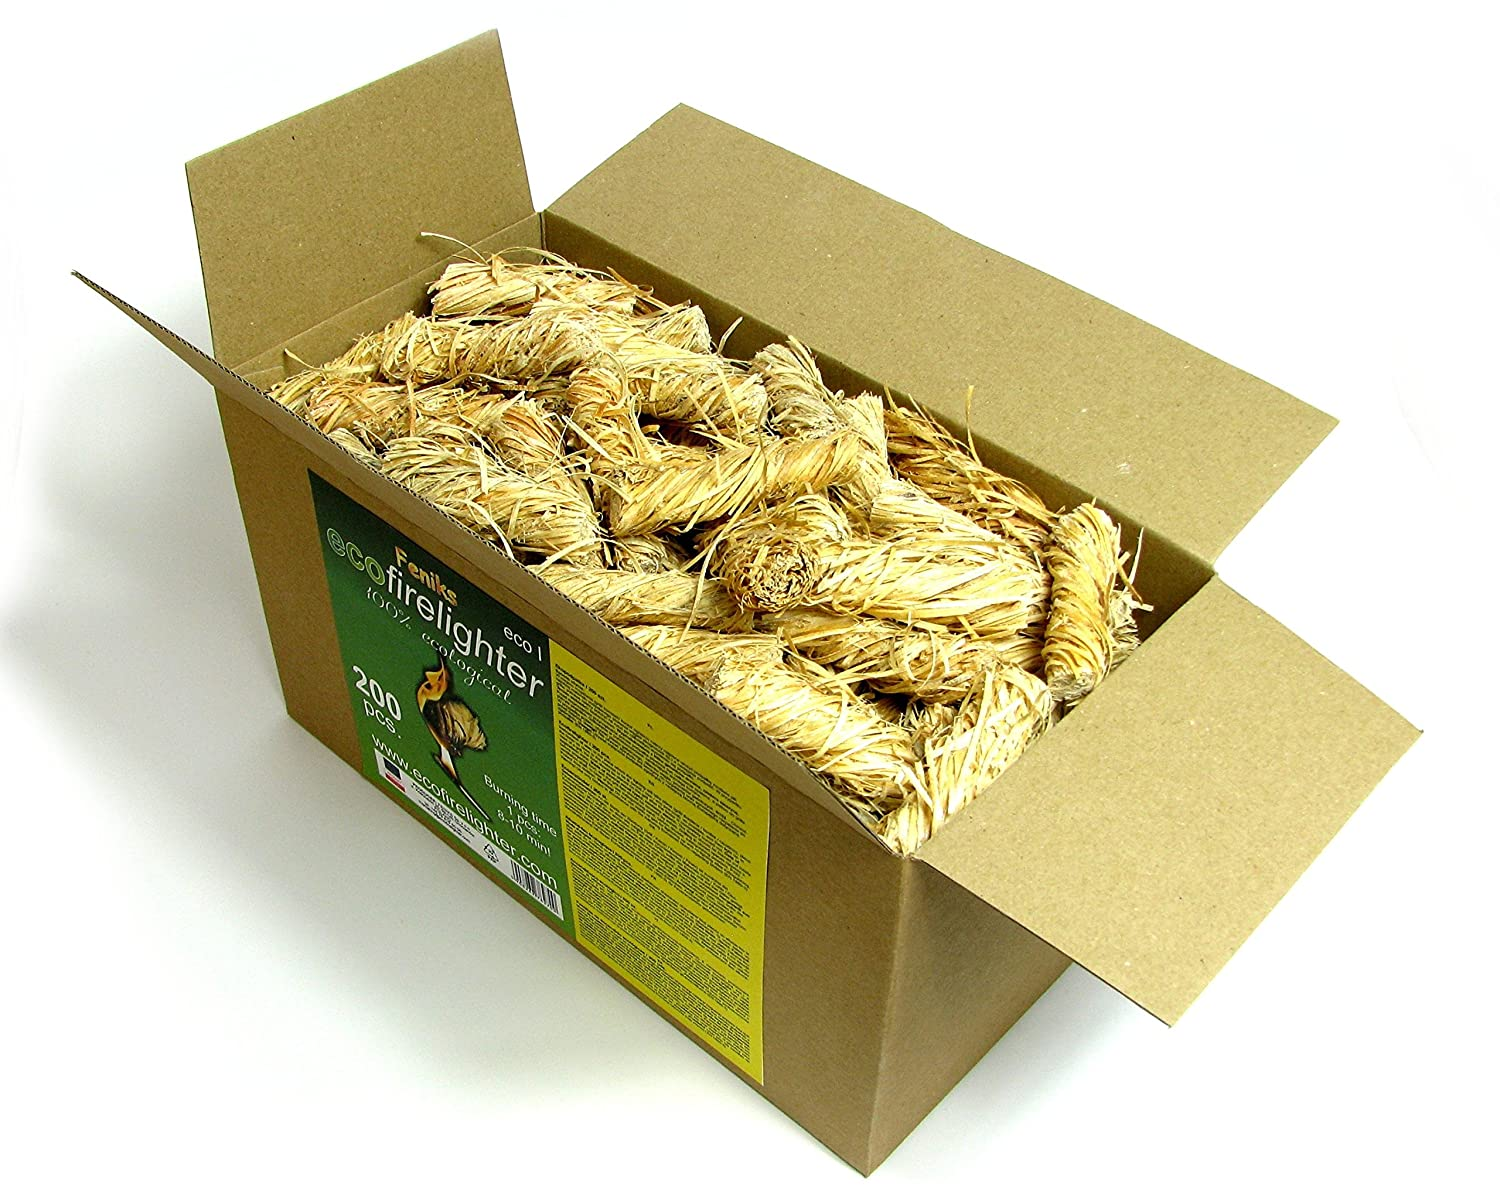 ECO Firelighters 200pcs. in the box, For Fireplace, Stoves, Barbecues...